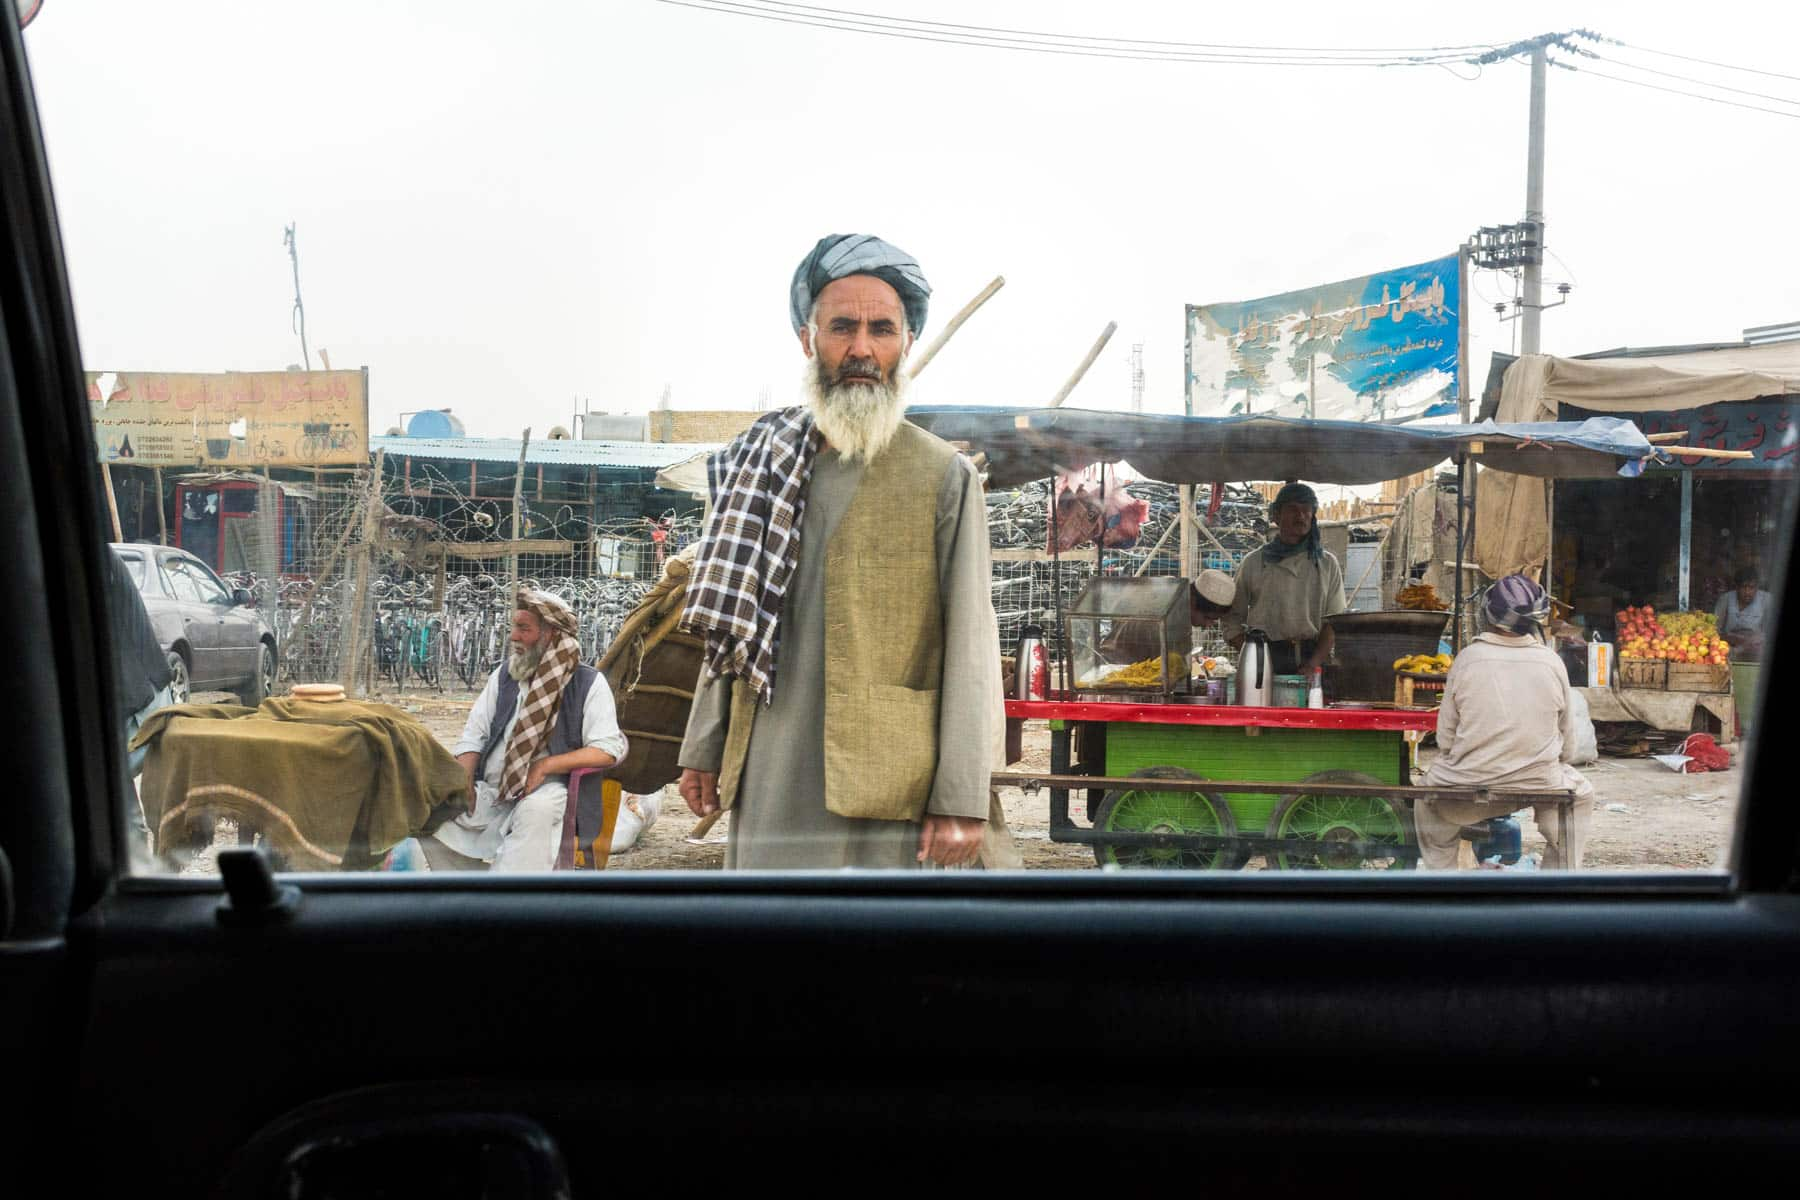 Photos of Mazar-i-Sharif, Afghanistan - A man with beard and turban on the side of the road - Lost With Purpose